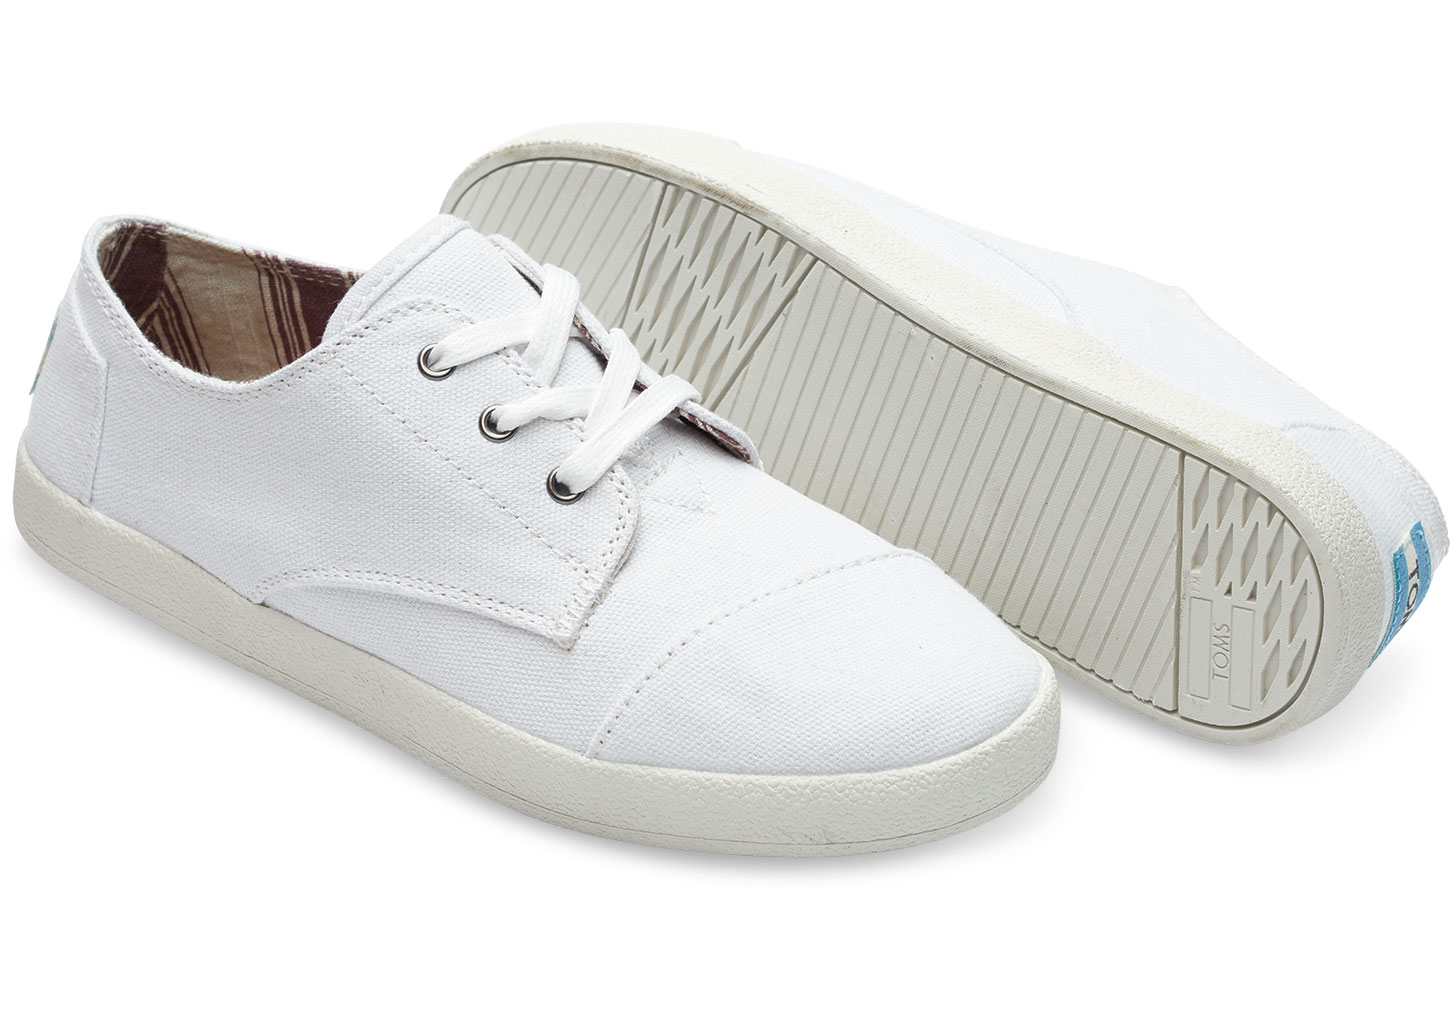 ad57f12c795 Lyst - TOMS White Canvas Women s Paseos in White